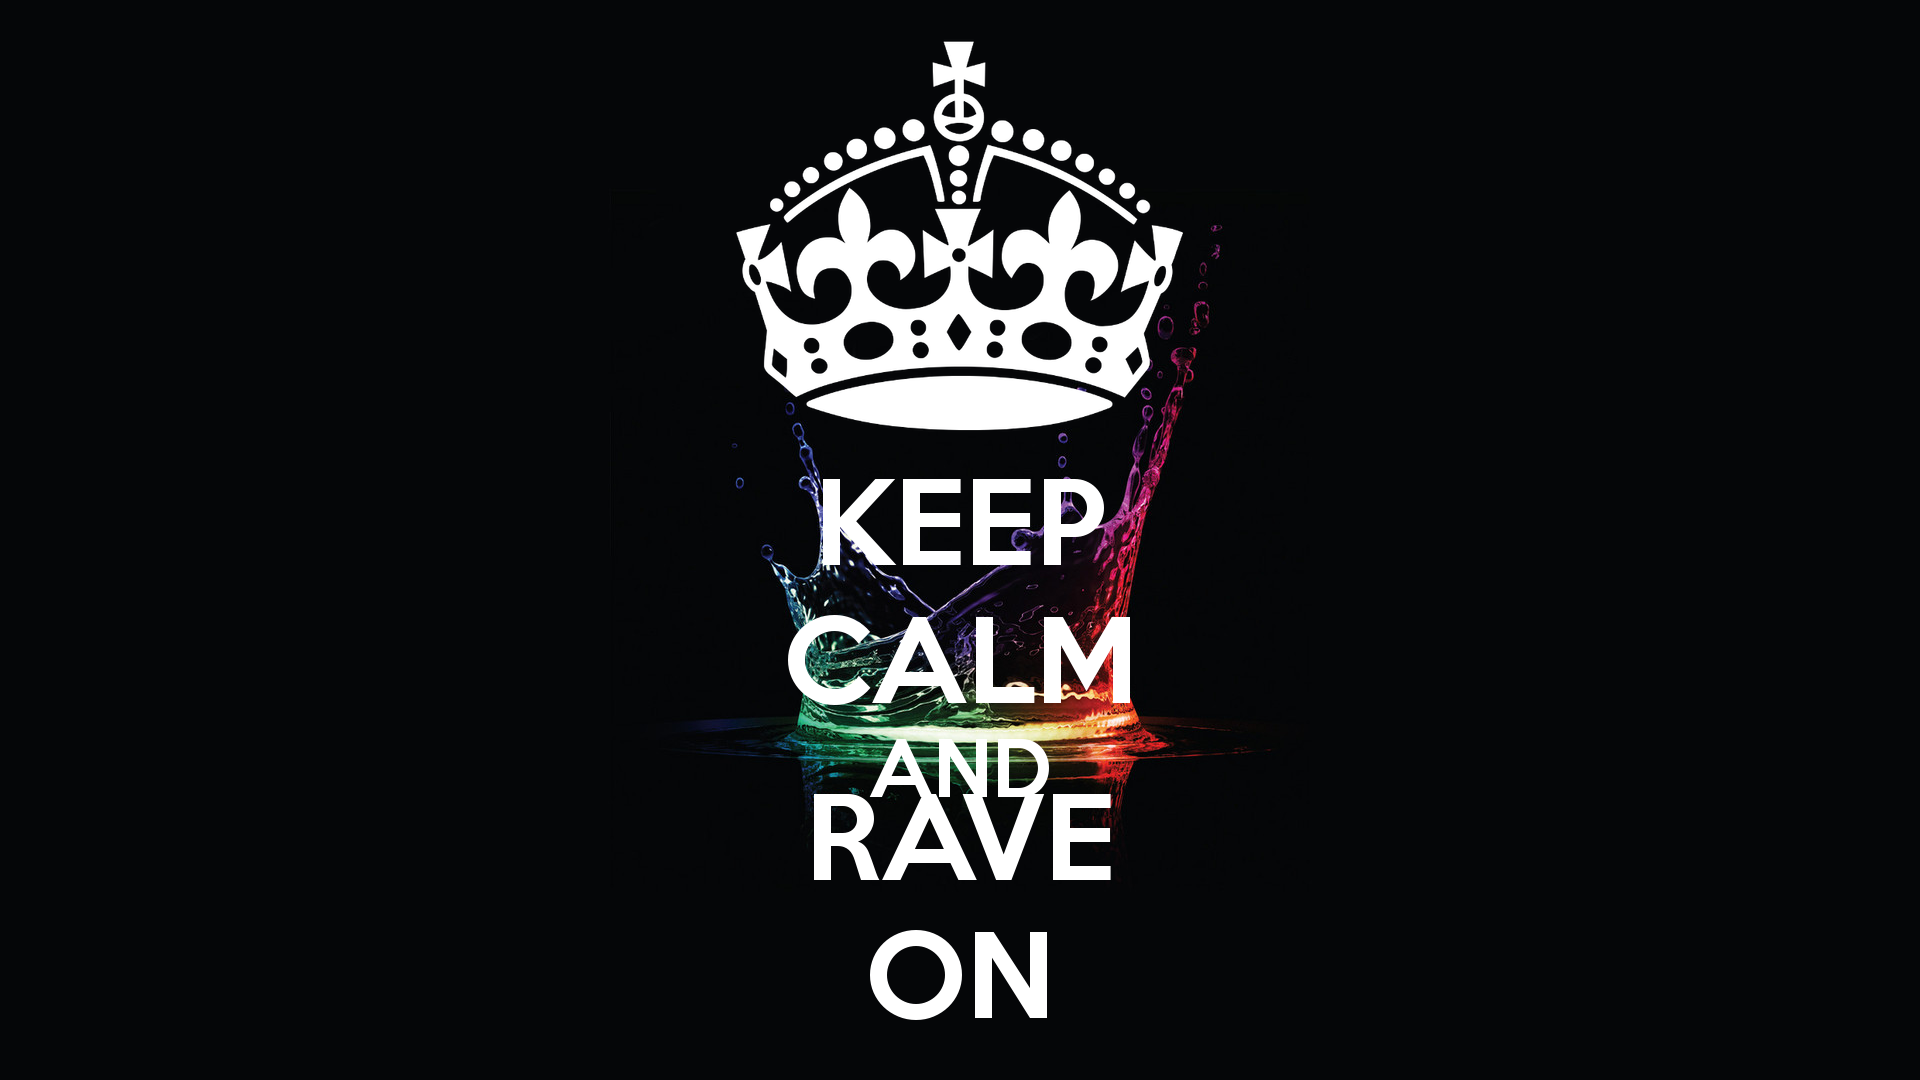 Quality Cool Rave Wallpapers